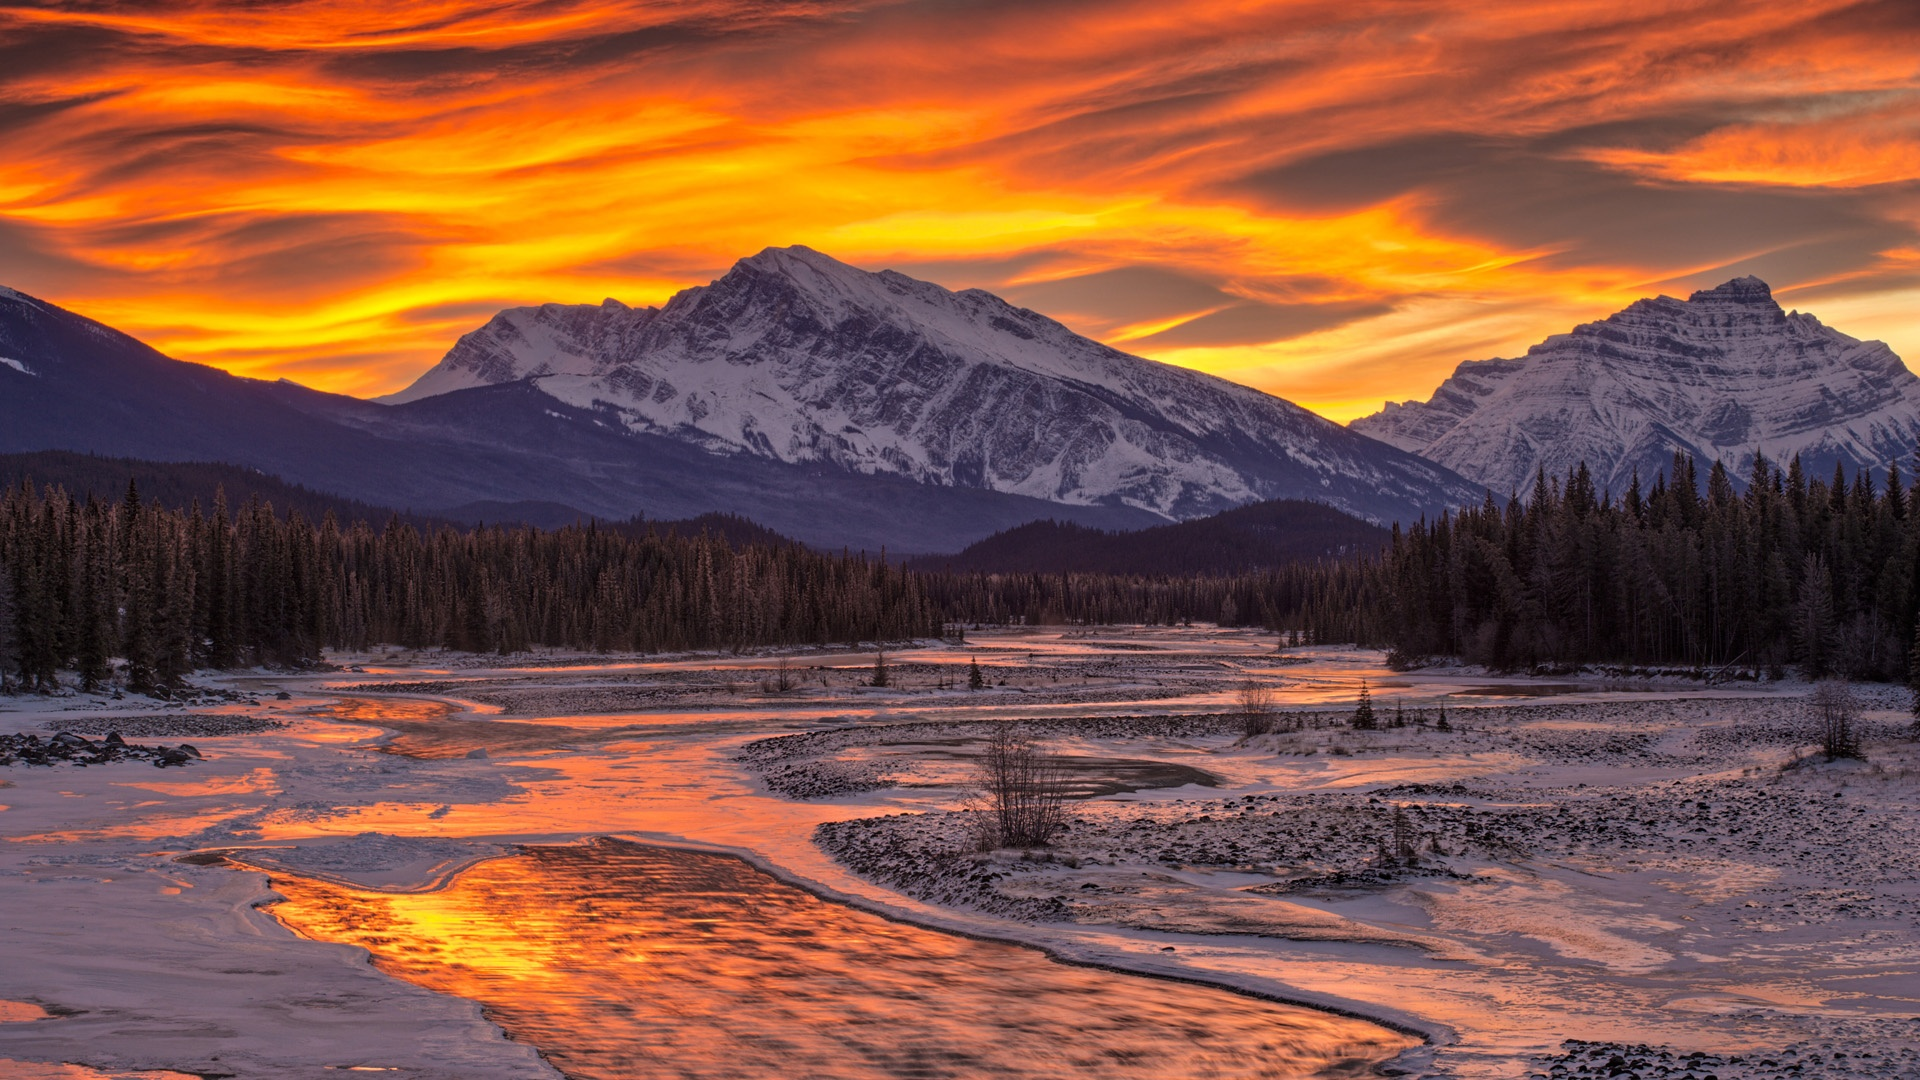 Snow Covered Mountains Wallpaper - WallpaperSafari Sunset Over Snowy Mountains